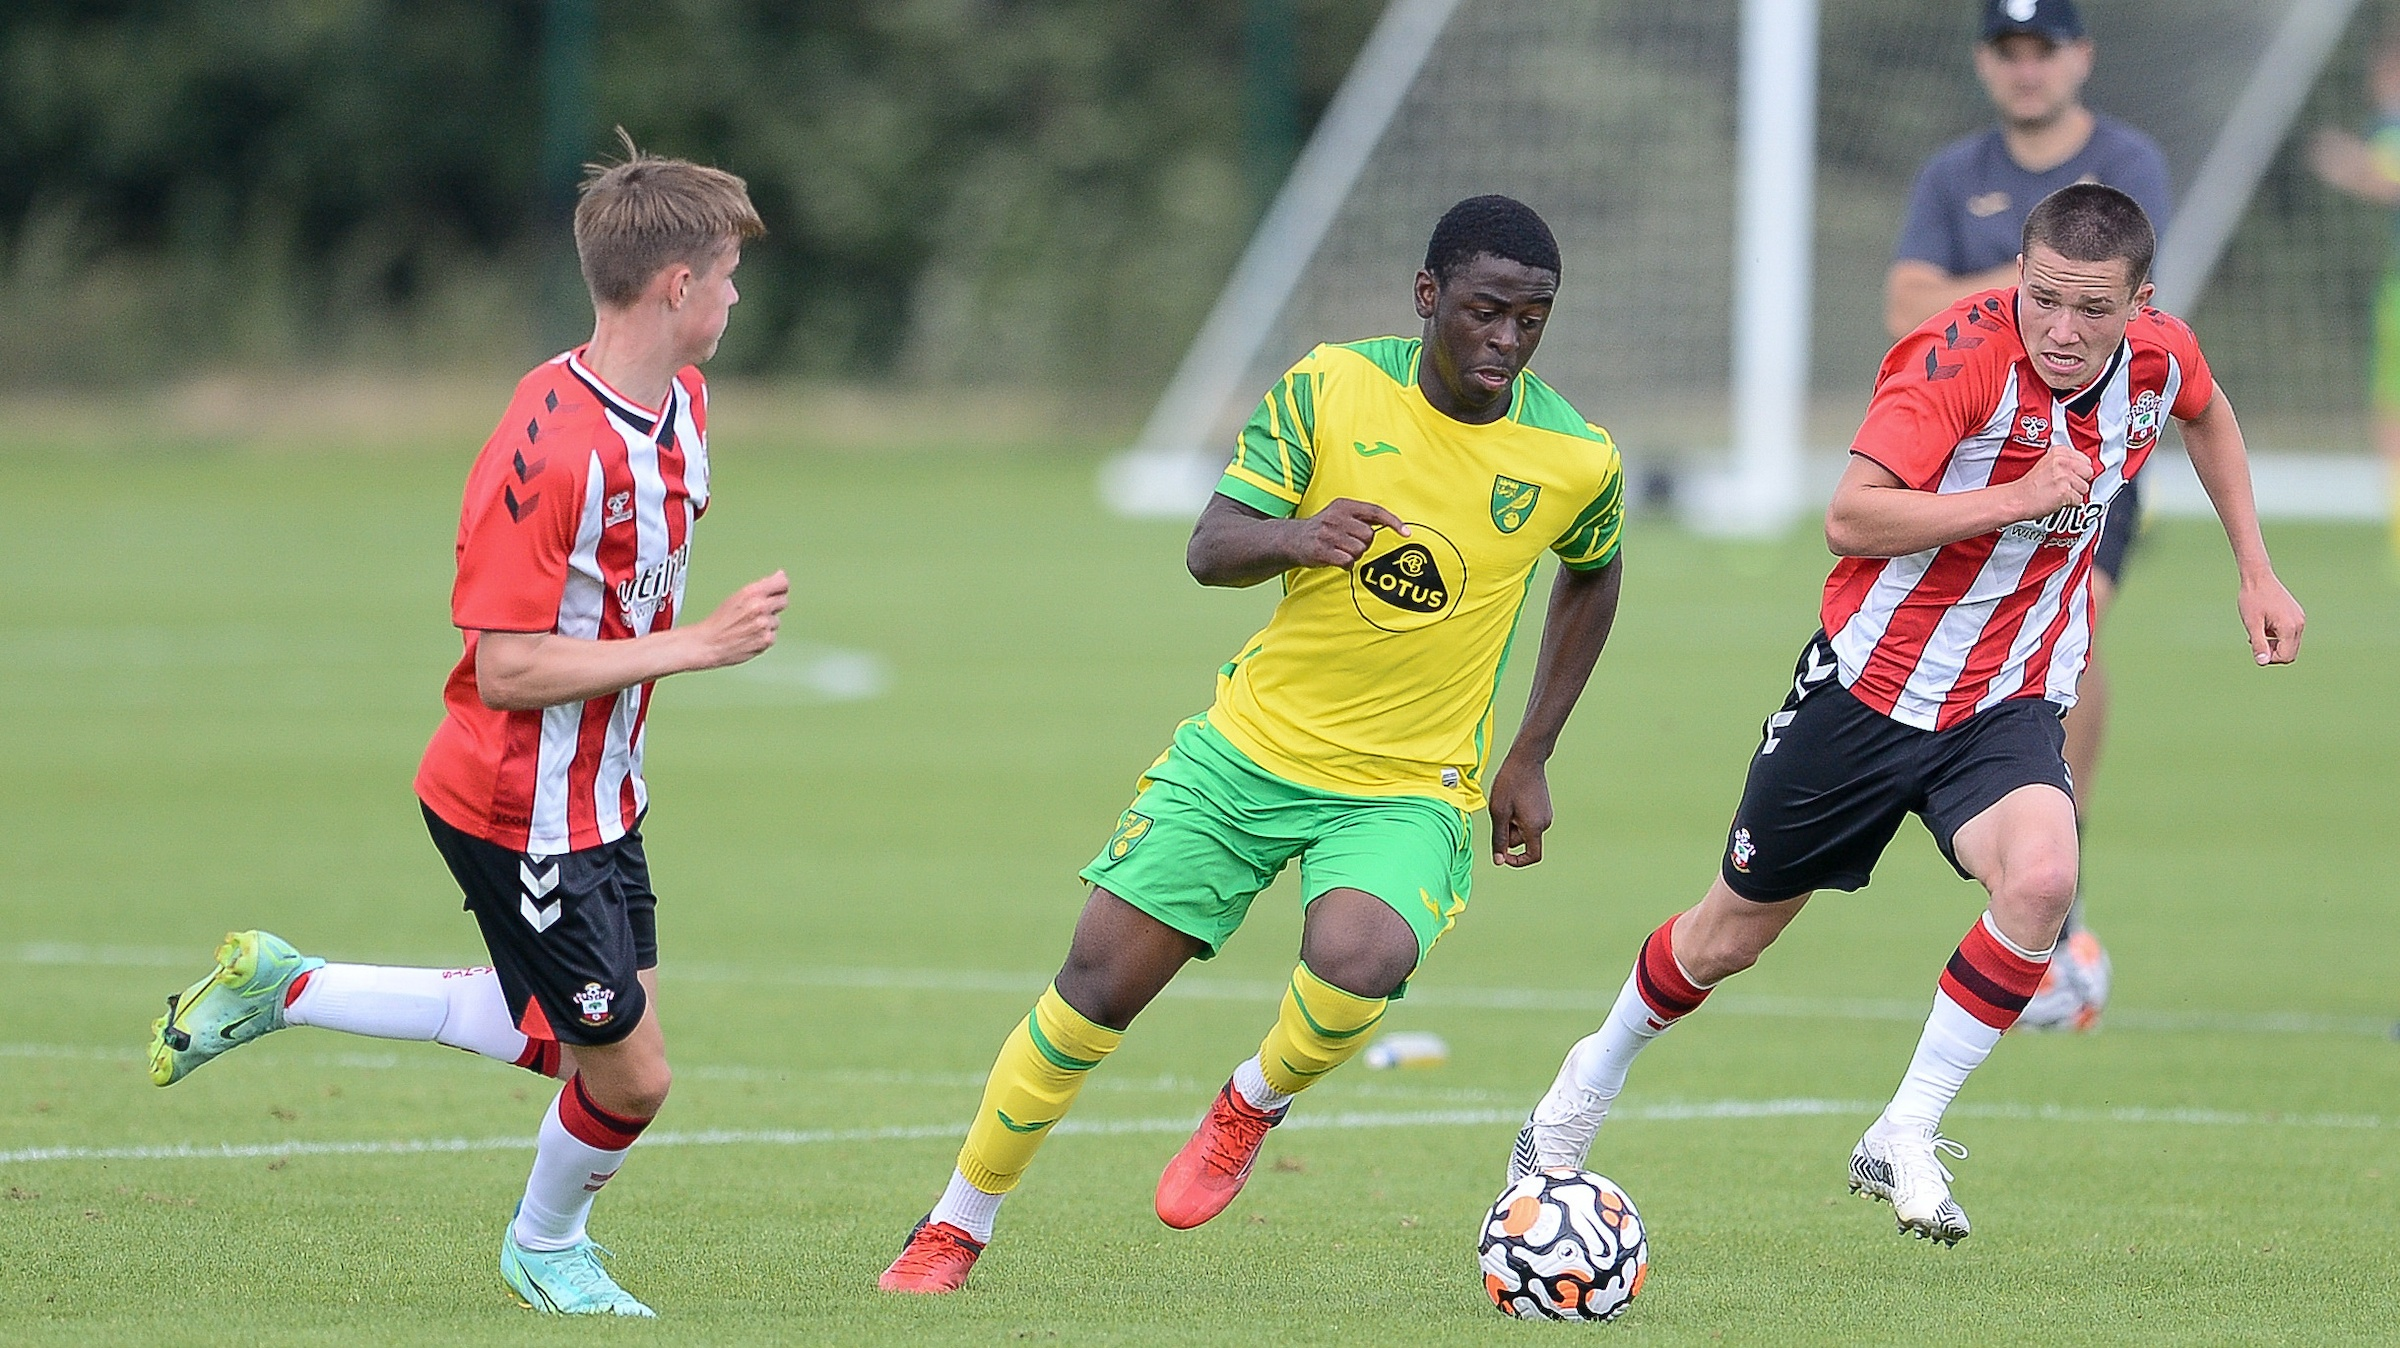 kick-off-time-for-norwich-city-u18s-v-brighton-changed